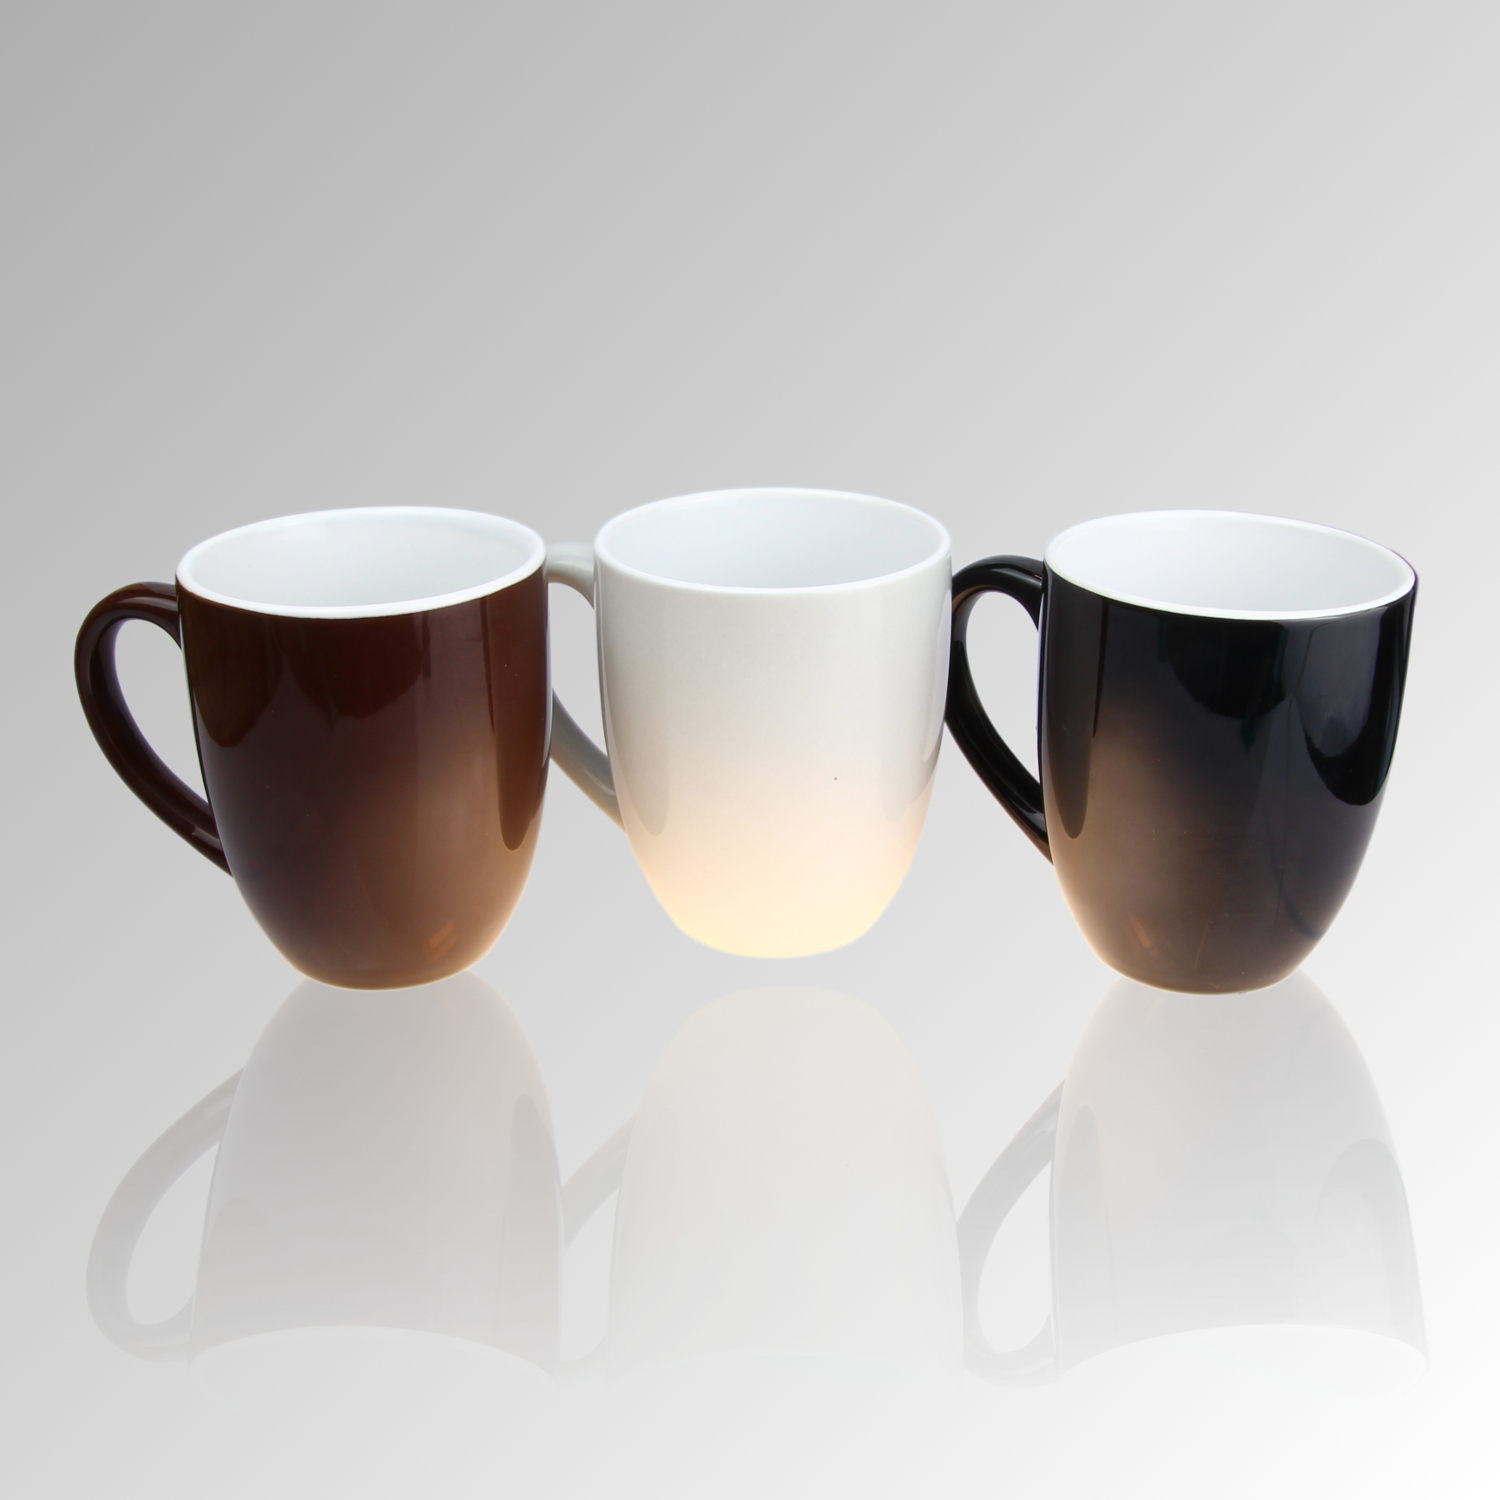 porzellan kaffeebecher henkeltasse tassen cappuccino set versch design ebay. Black Bedroom Furniture Sets. Home Design Ideas